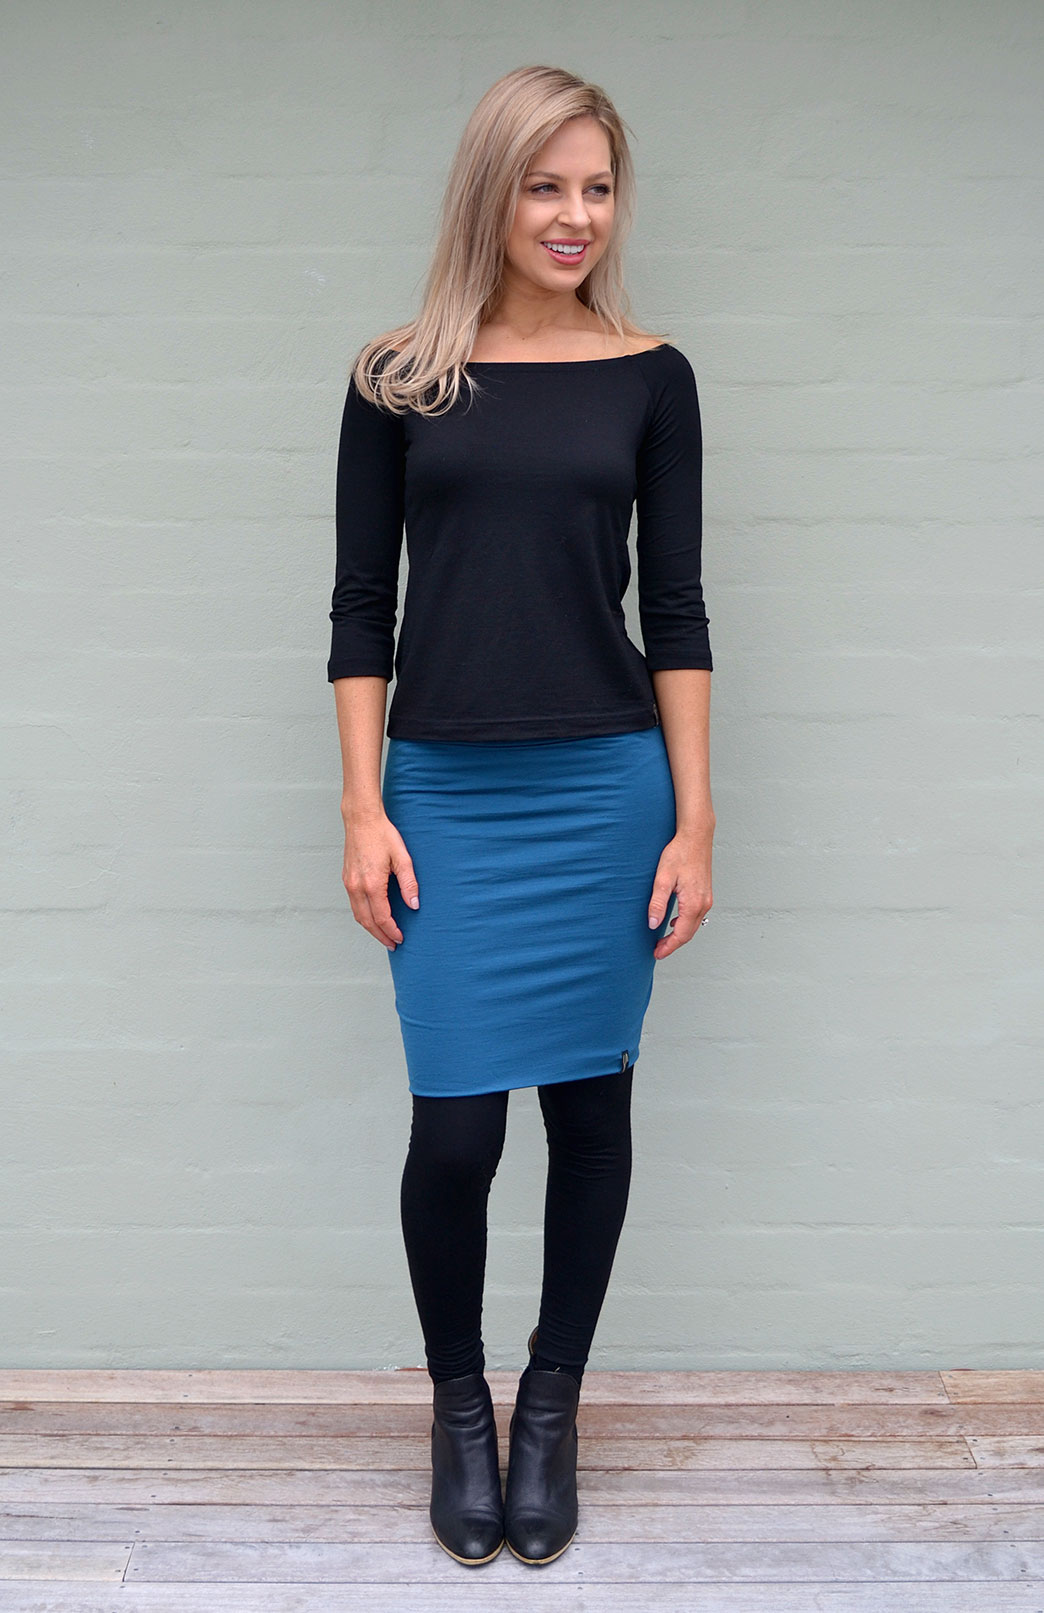 3/4 Sleeve Olivia Top in Black